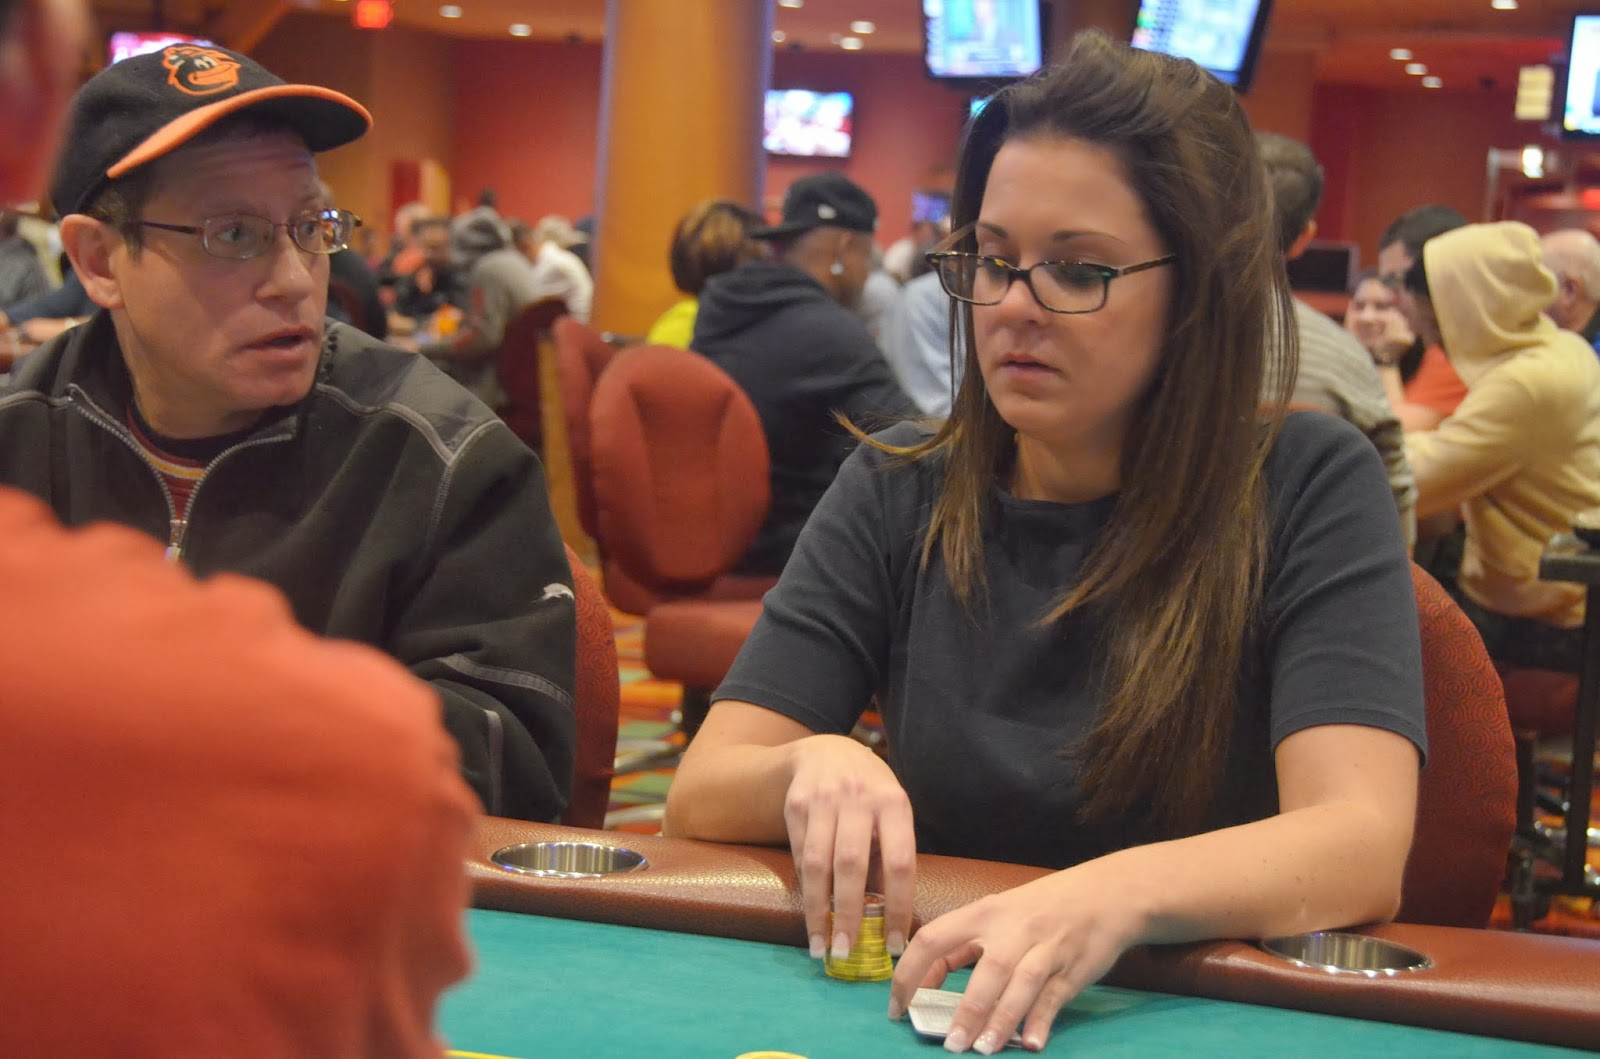 Parx big stax iv big stax 1000 day 3 7th place hubbard 15 949 for Parx poker room live game report